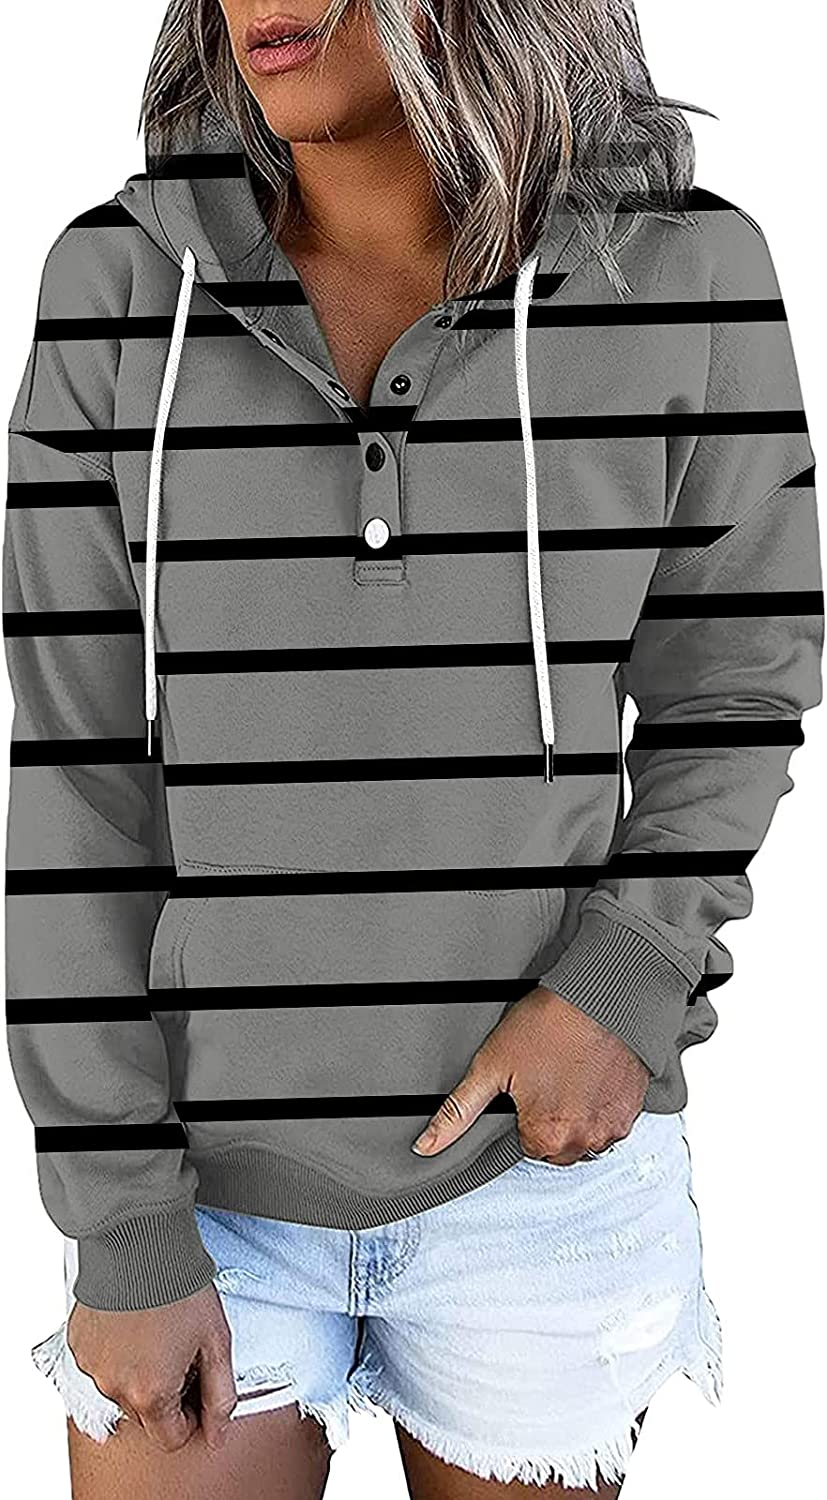 Women's Stripe Print Hooded Shirts Loose Fashion Long Sleeve Buttons V Neck Sweatshirt Casual Blouse Pullover Tops